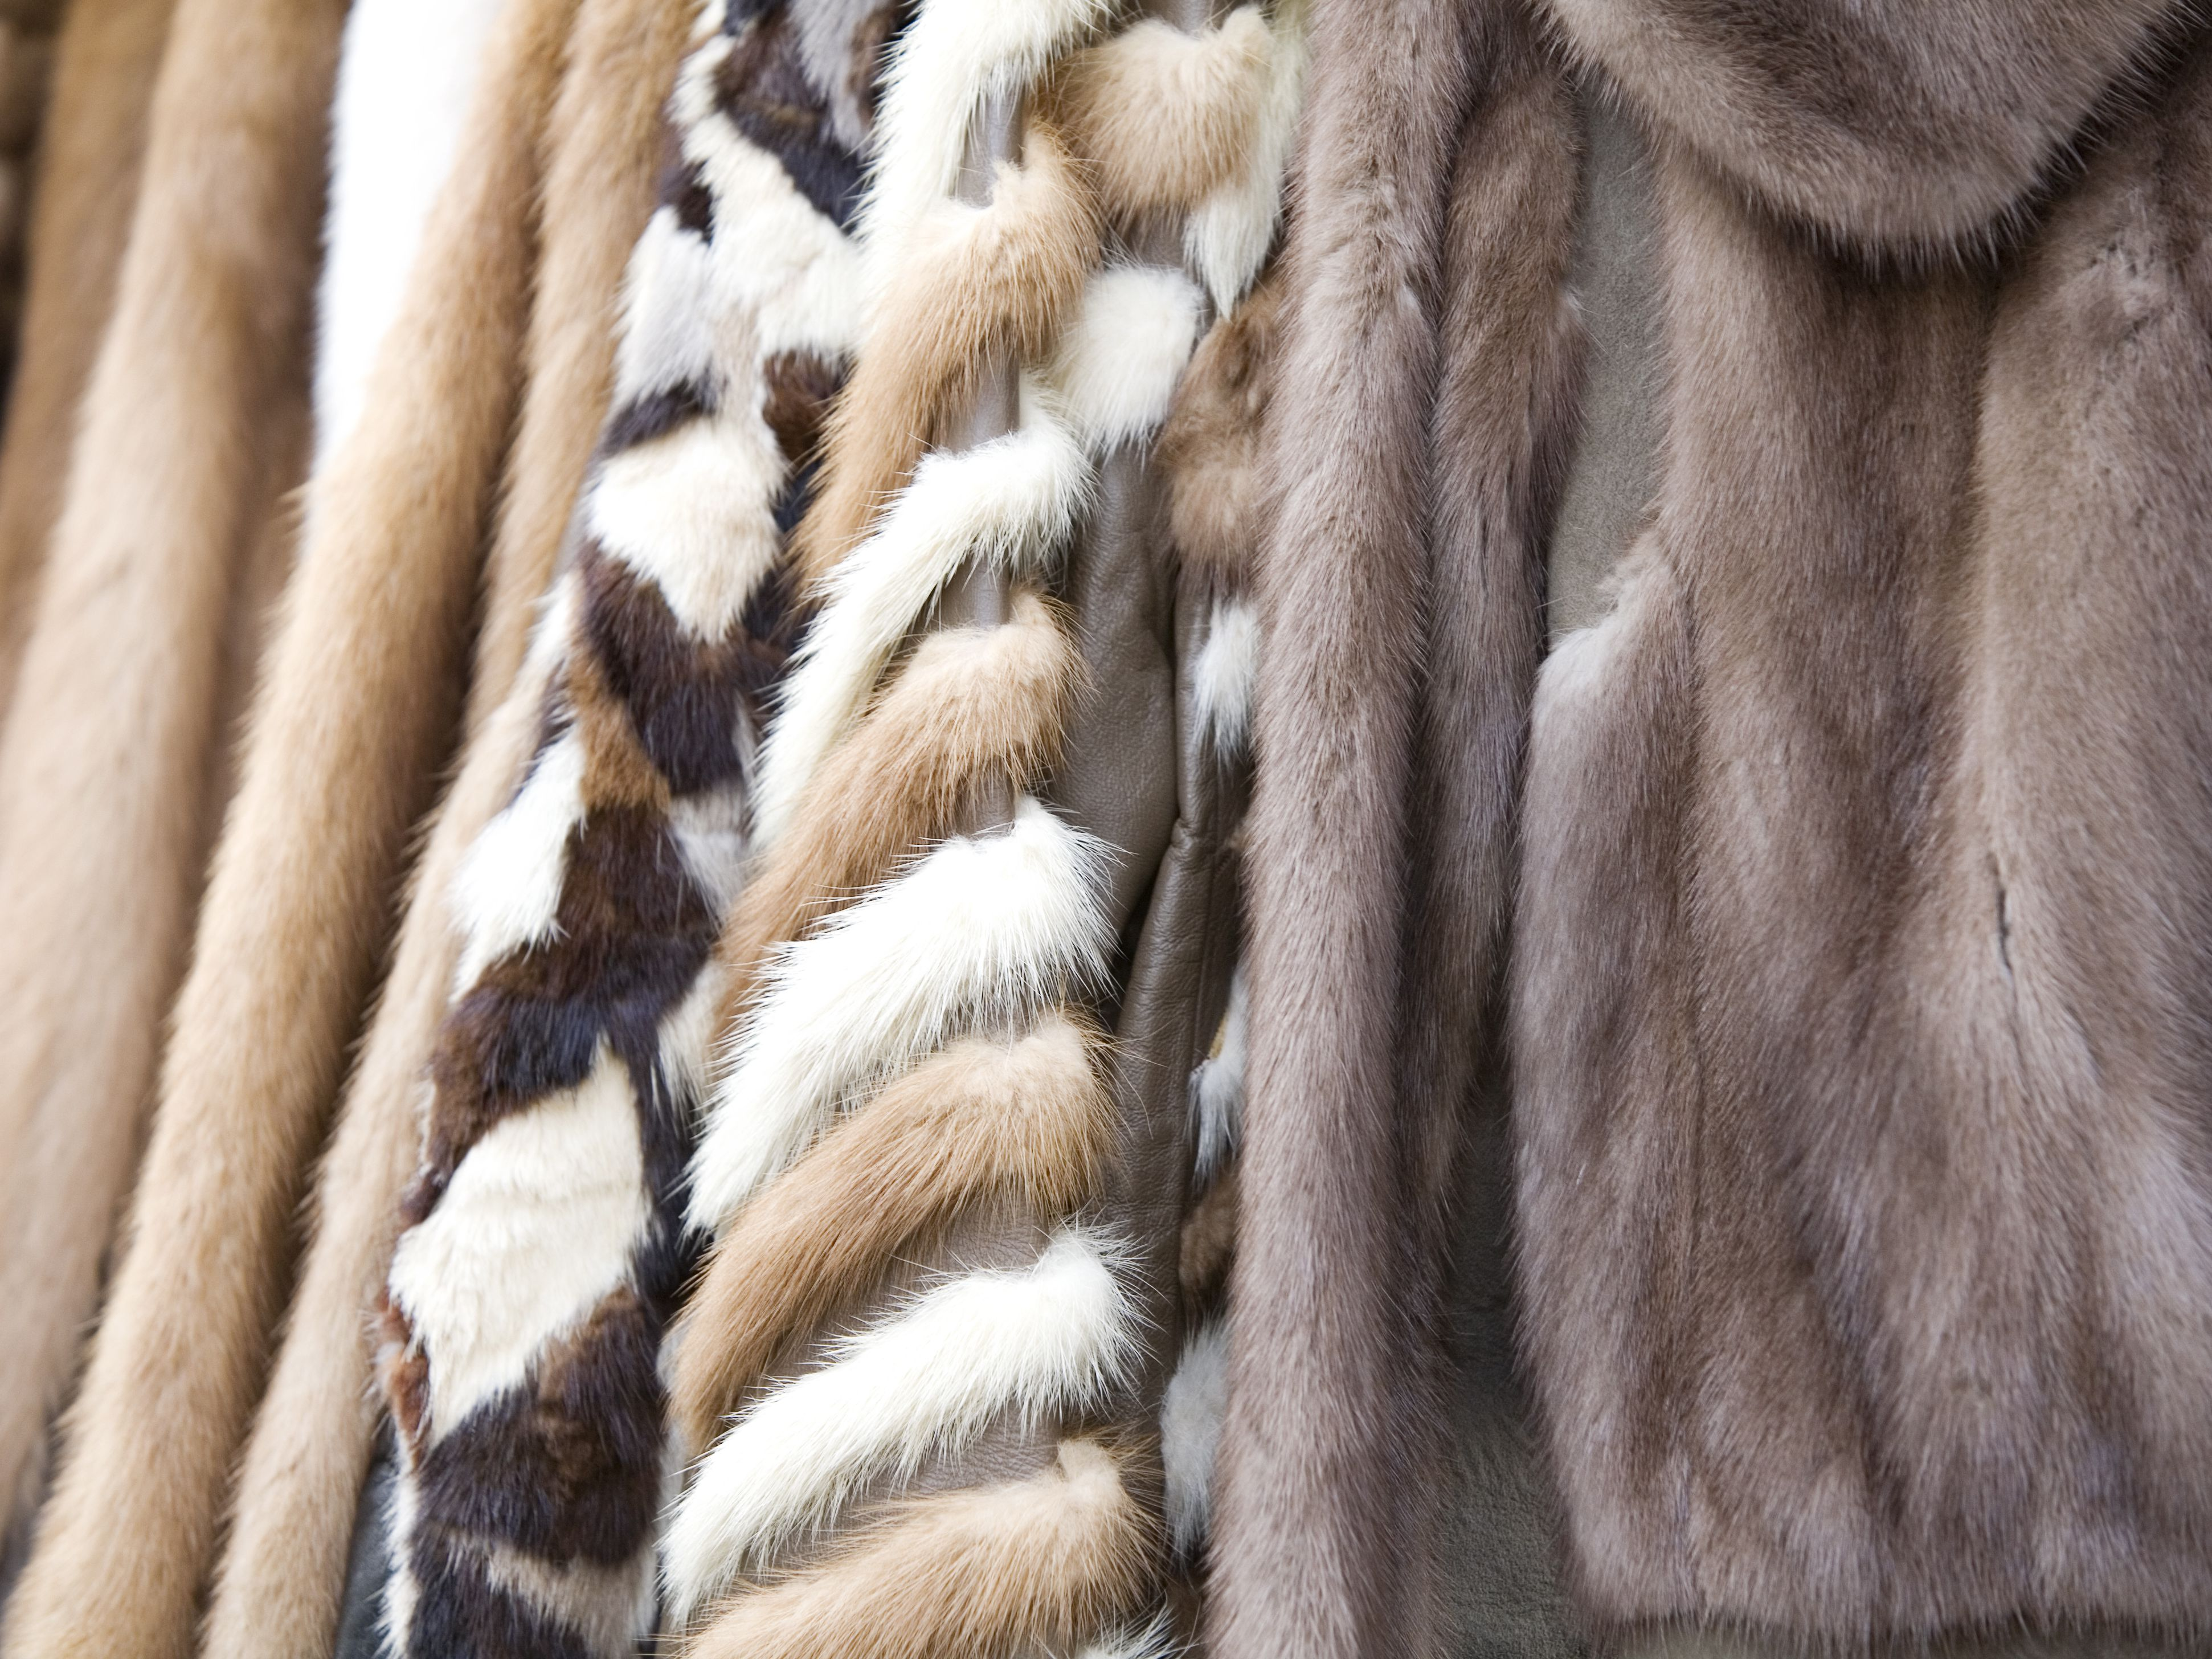 d2d5534f2 How to Clean and Care for Natural Fur Coats